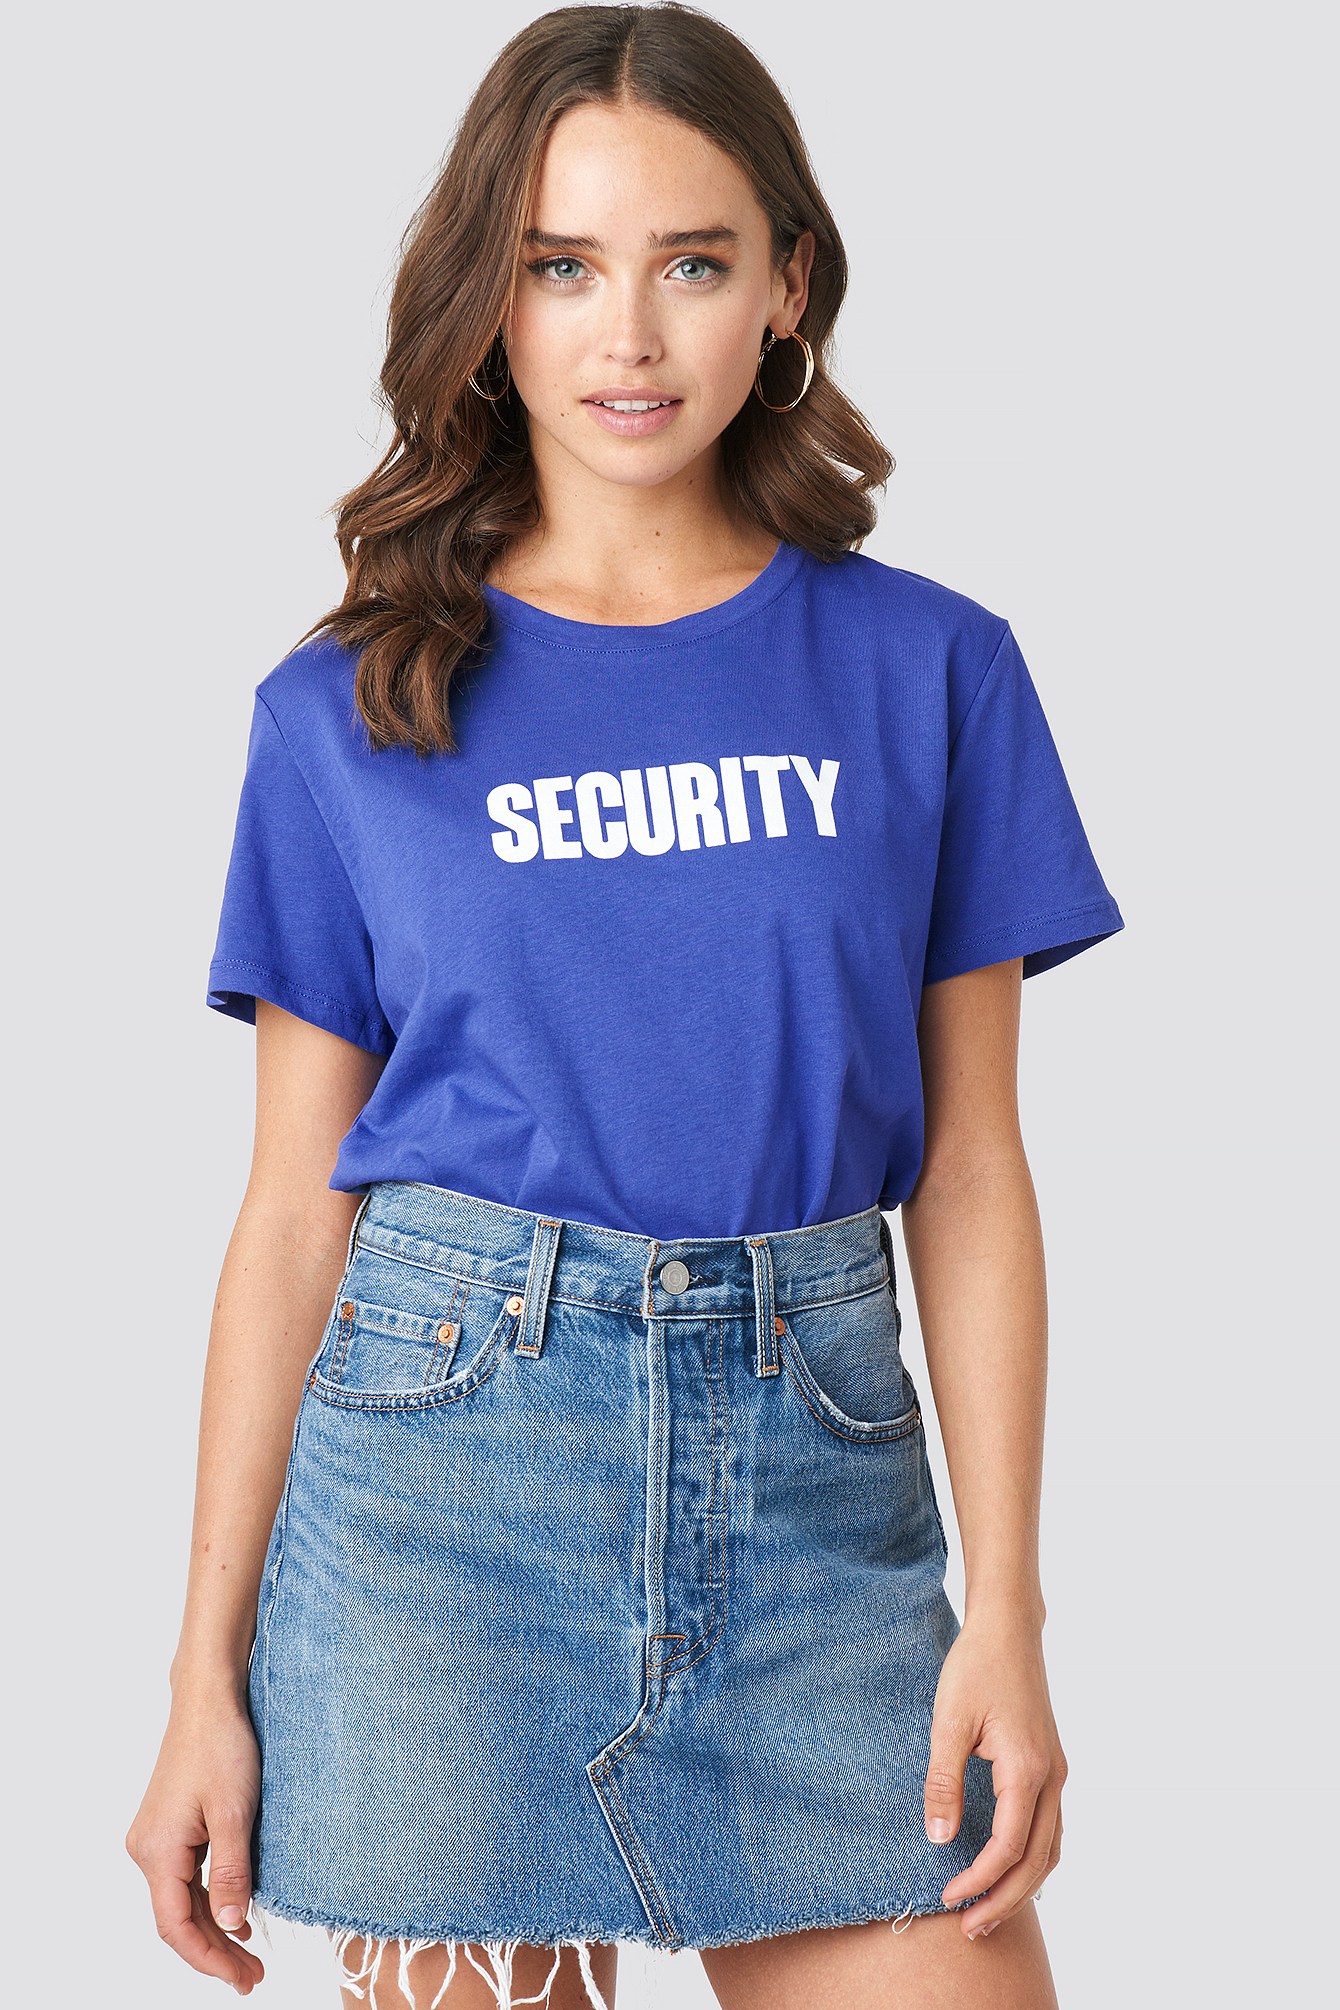 Security Oversized tee NA-KD.COM